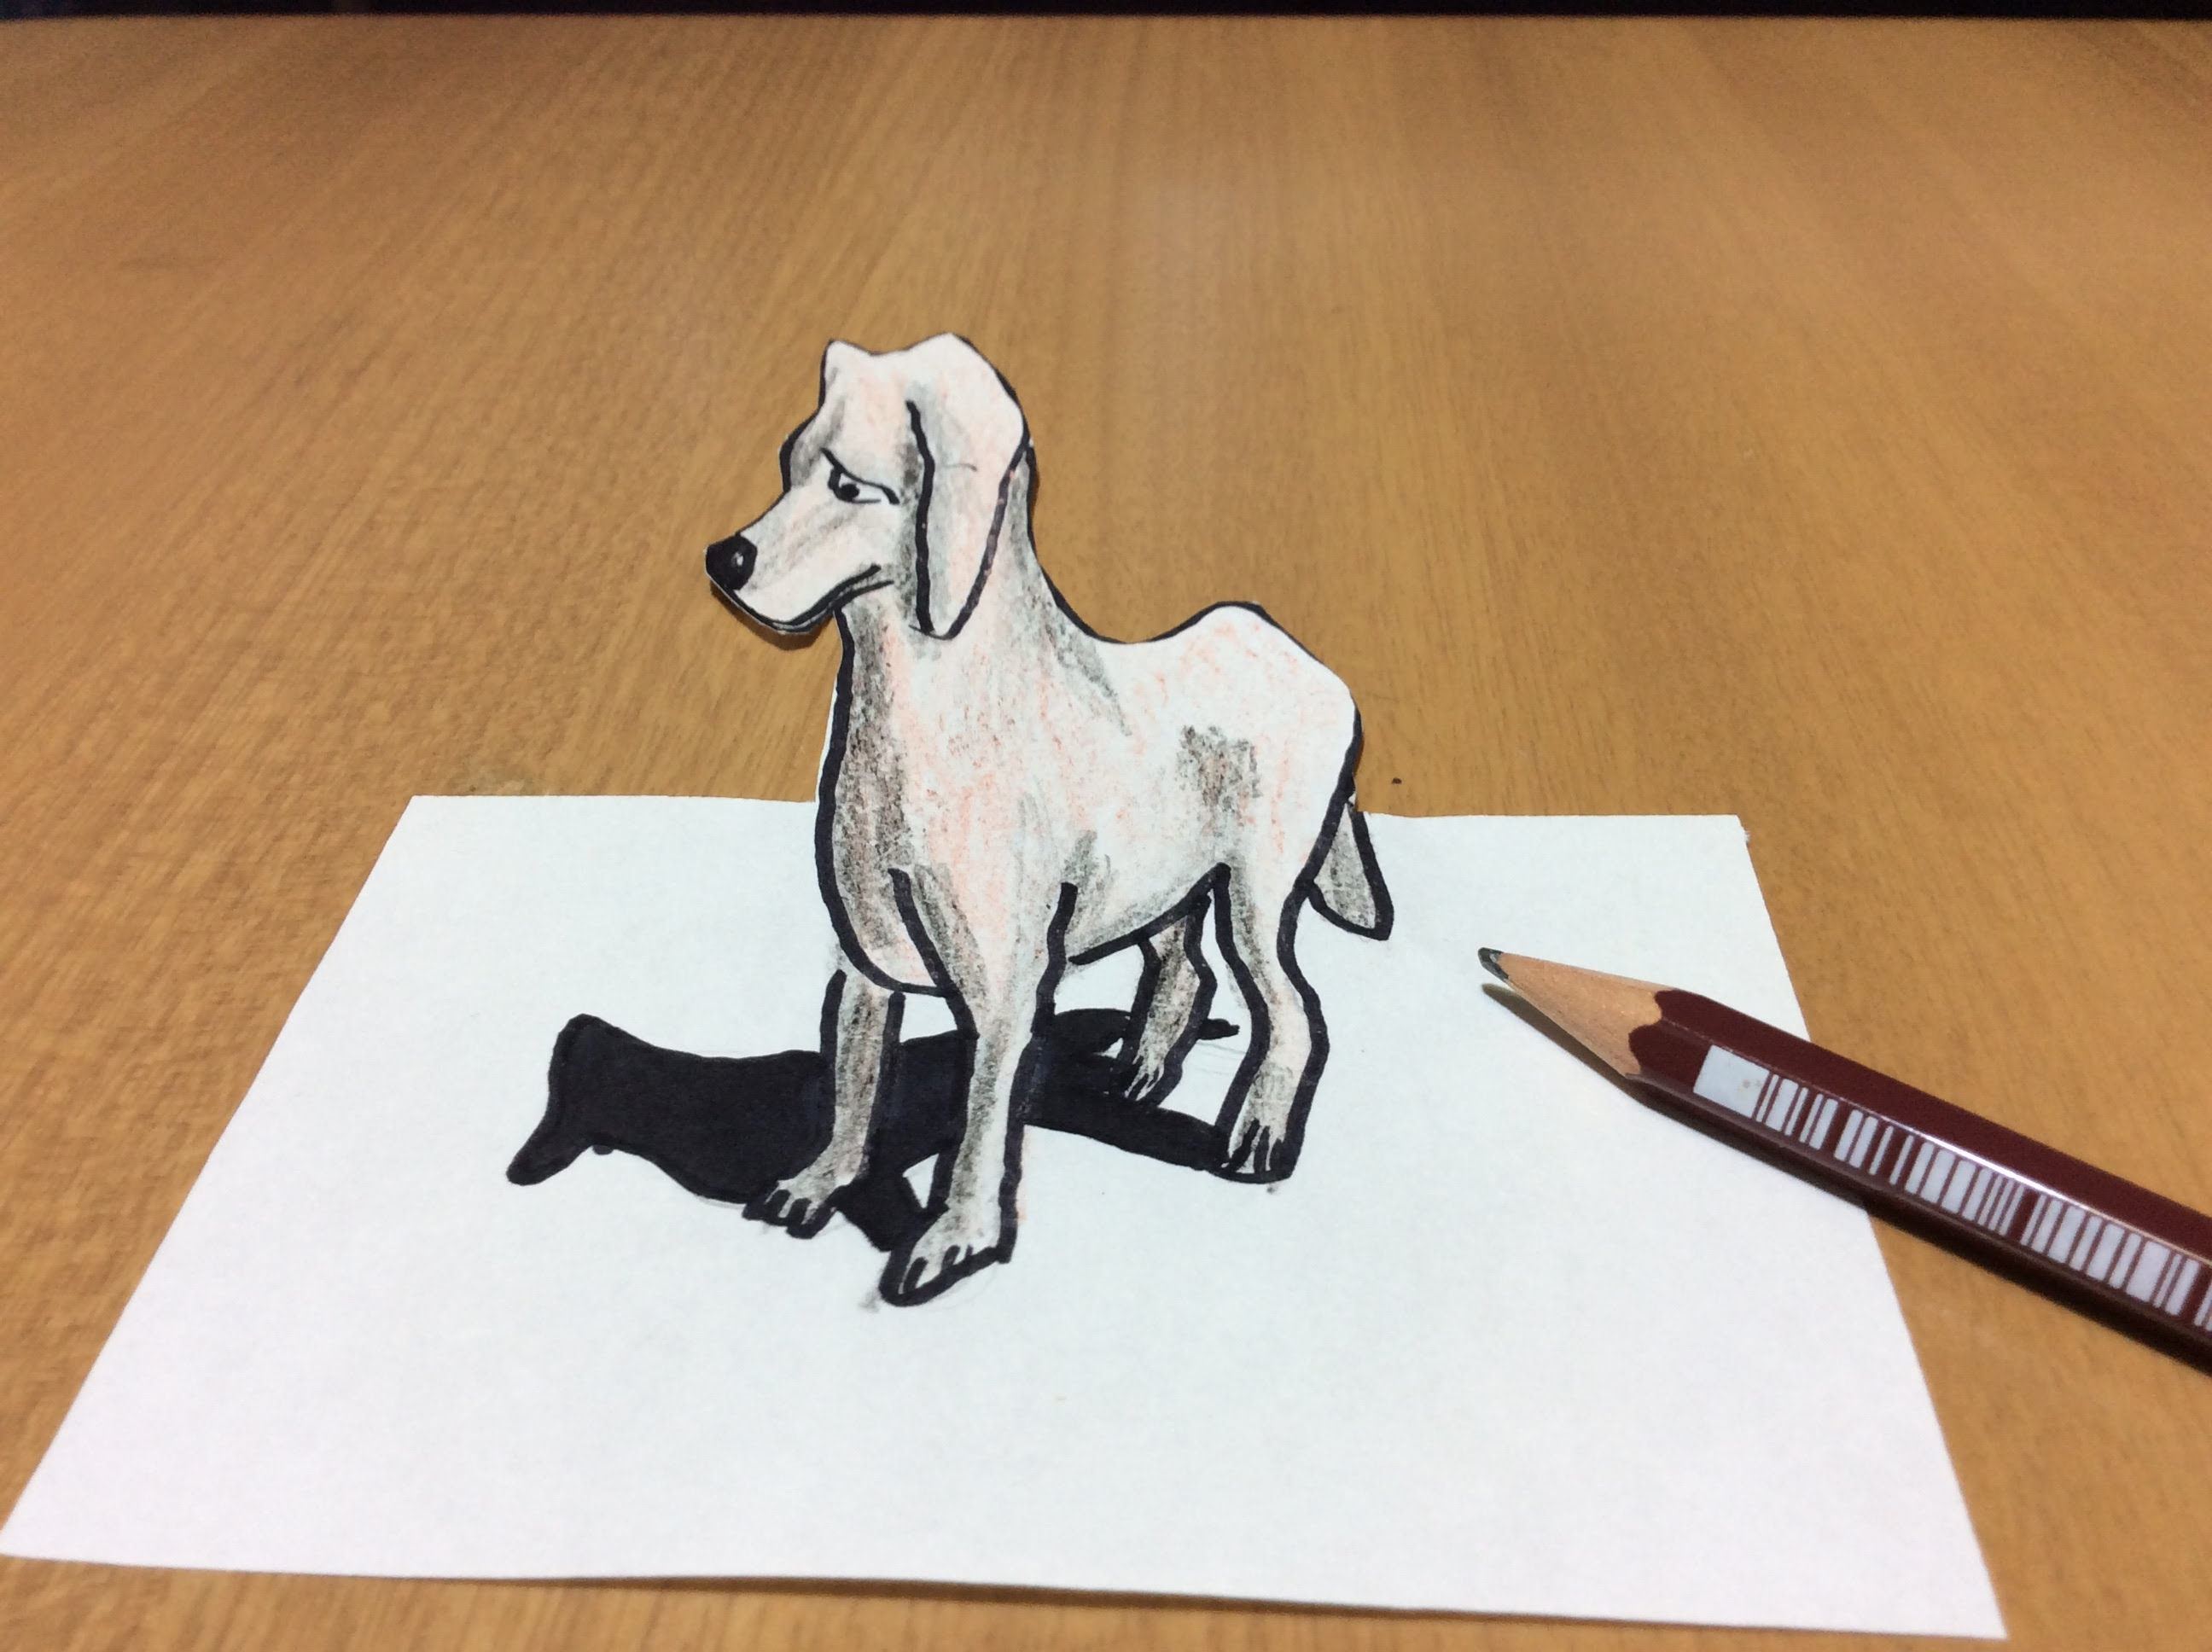 Drawn puppy real dog Puppy Time  Dog Lapse